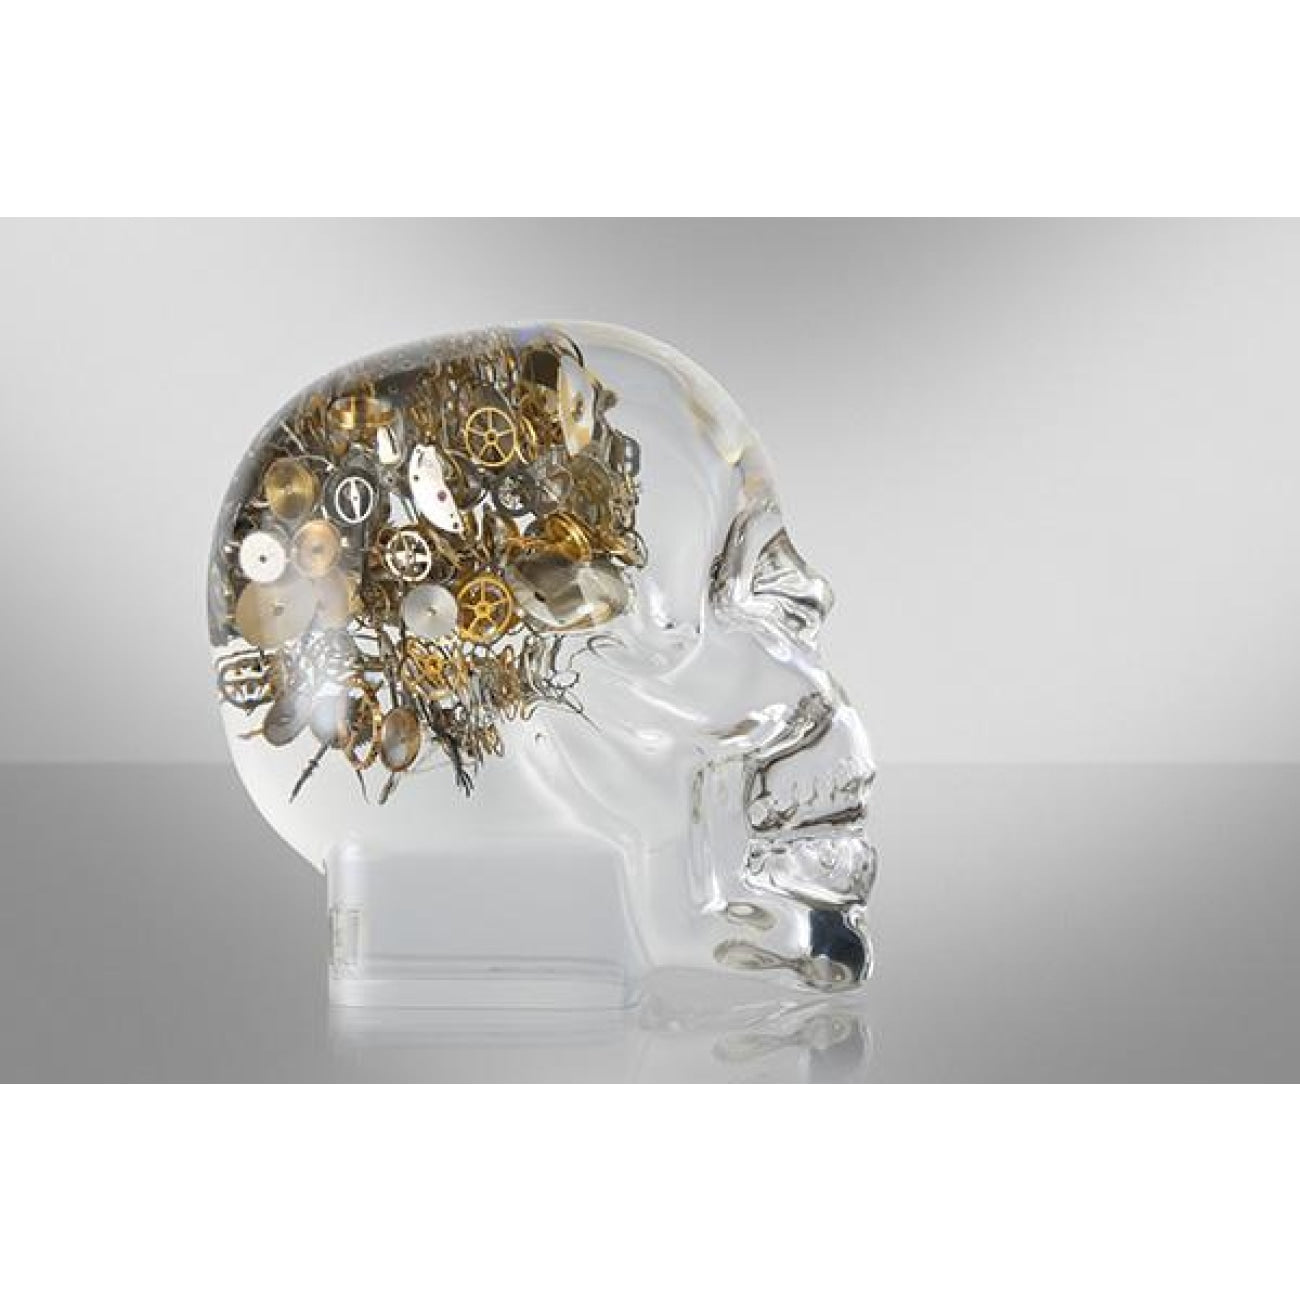 Berd Vaye Accessories - Lost in Time: Large Skull | Manfredi Jewels